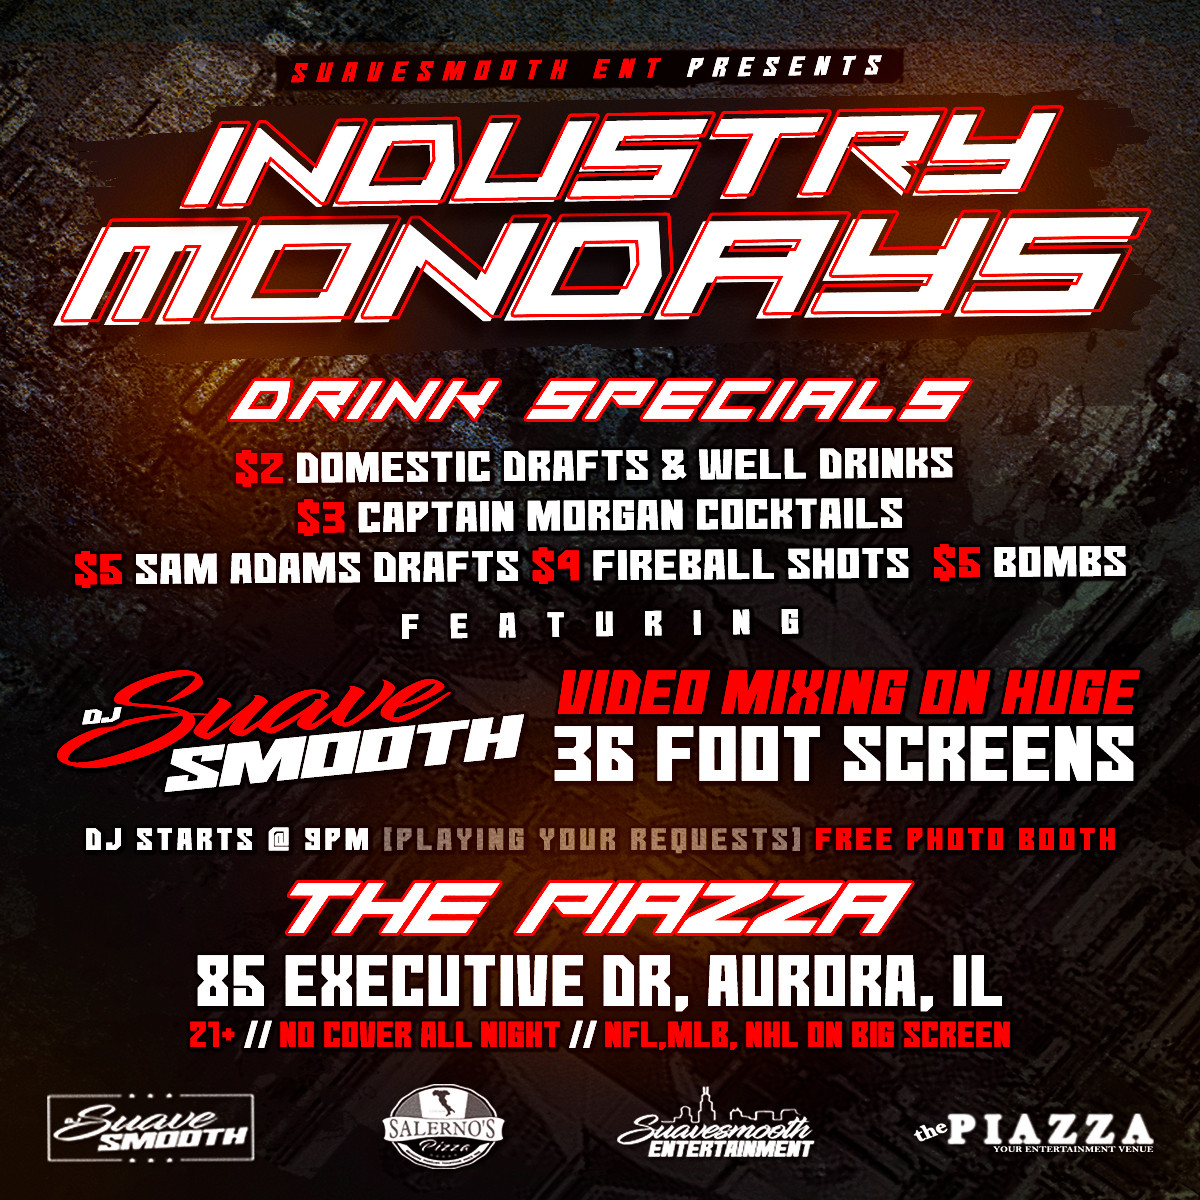 Industry Mondays at The Piazza with DJ Suavesmooth @ the PIAZZA - Aurora